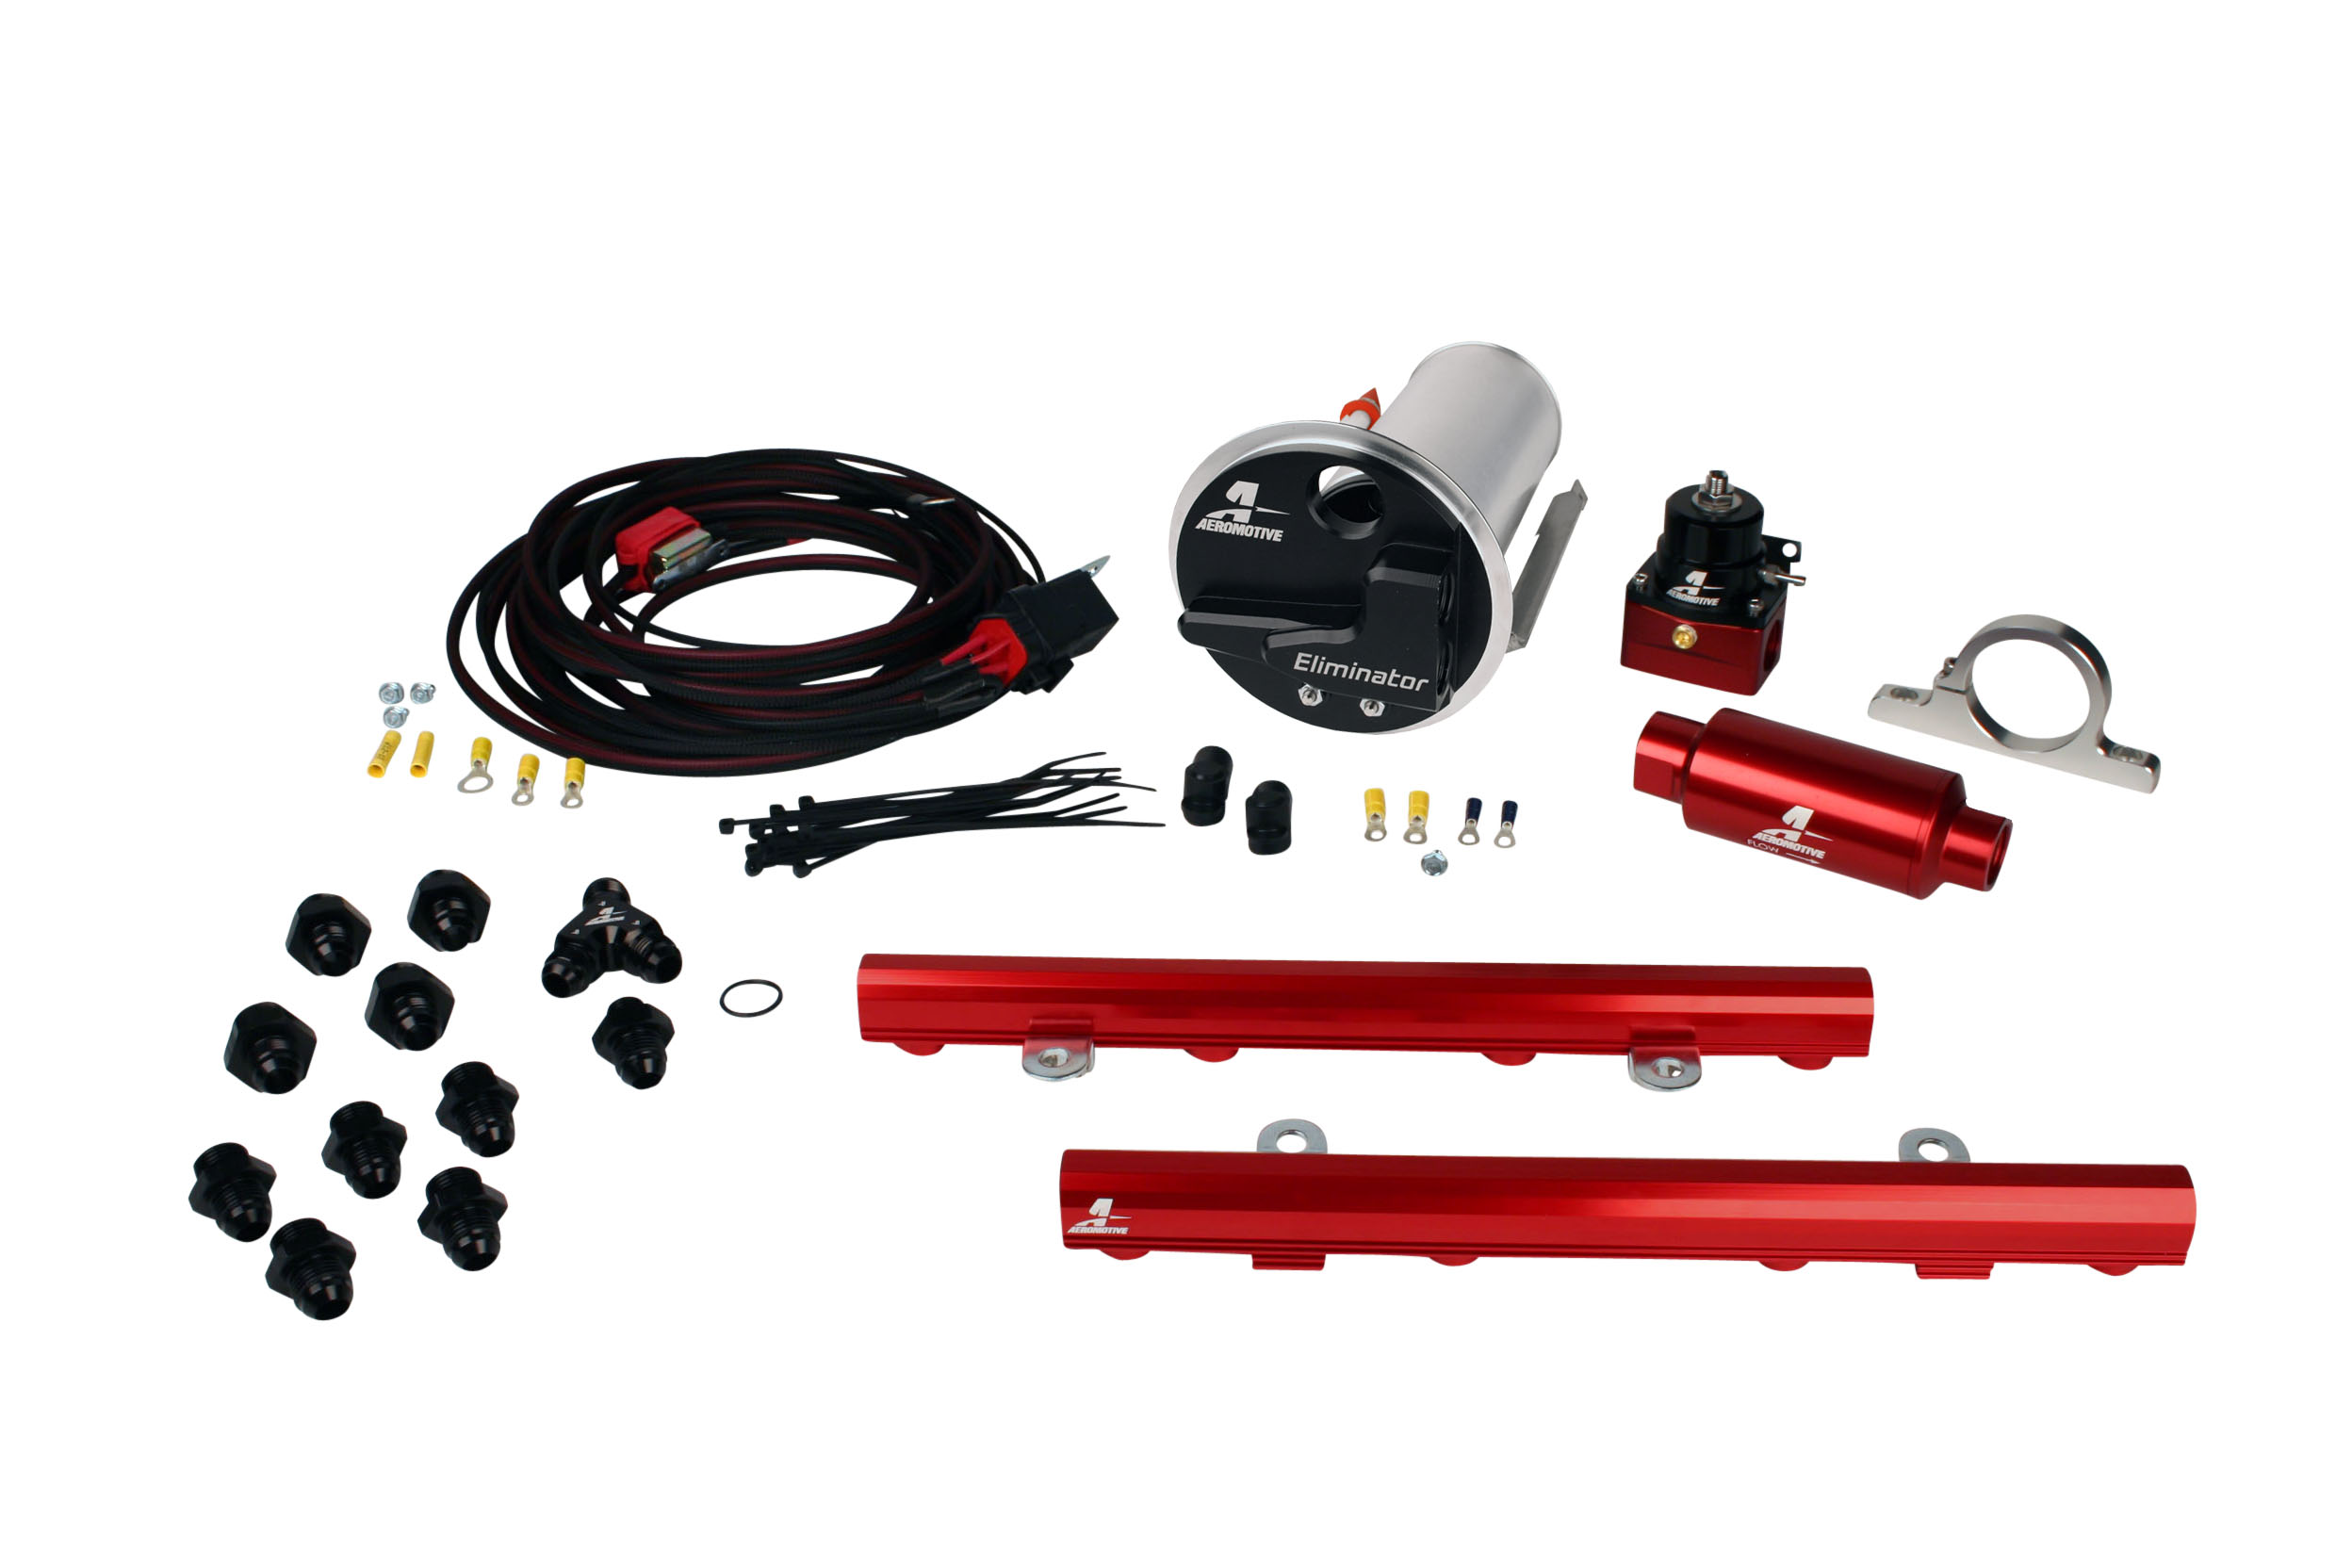 2007-2012 Ford Mustang Shelby GT500 Aeromotive Stealth Eliminator Race Fuel System w/5.0L 4-V Fuel Rails